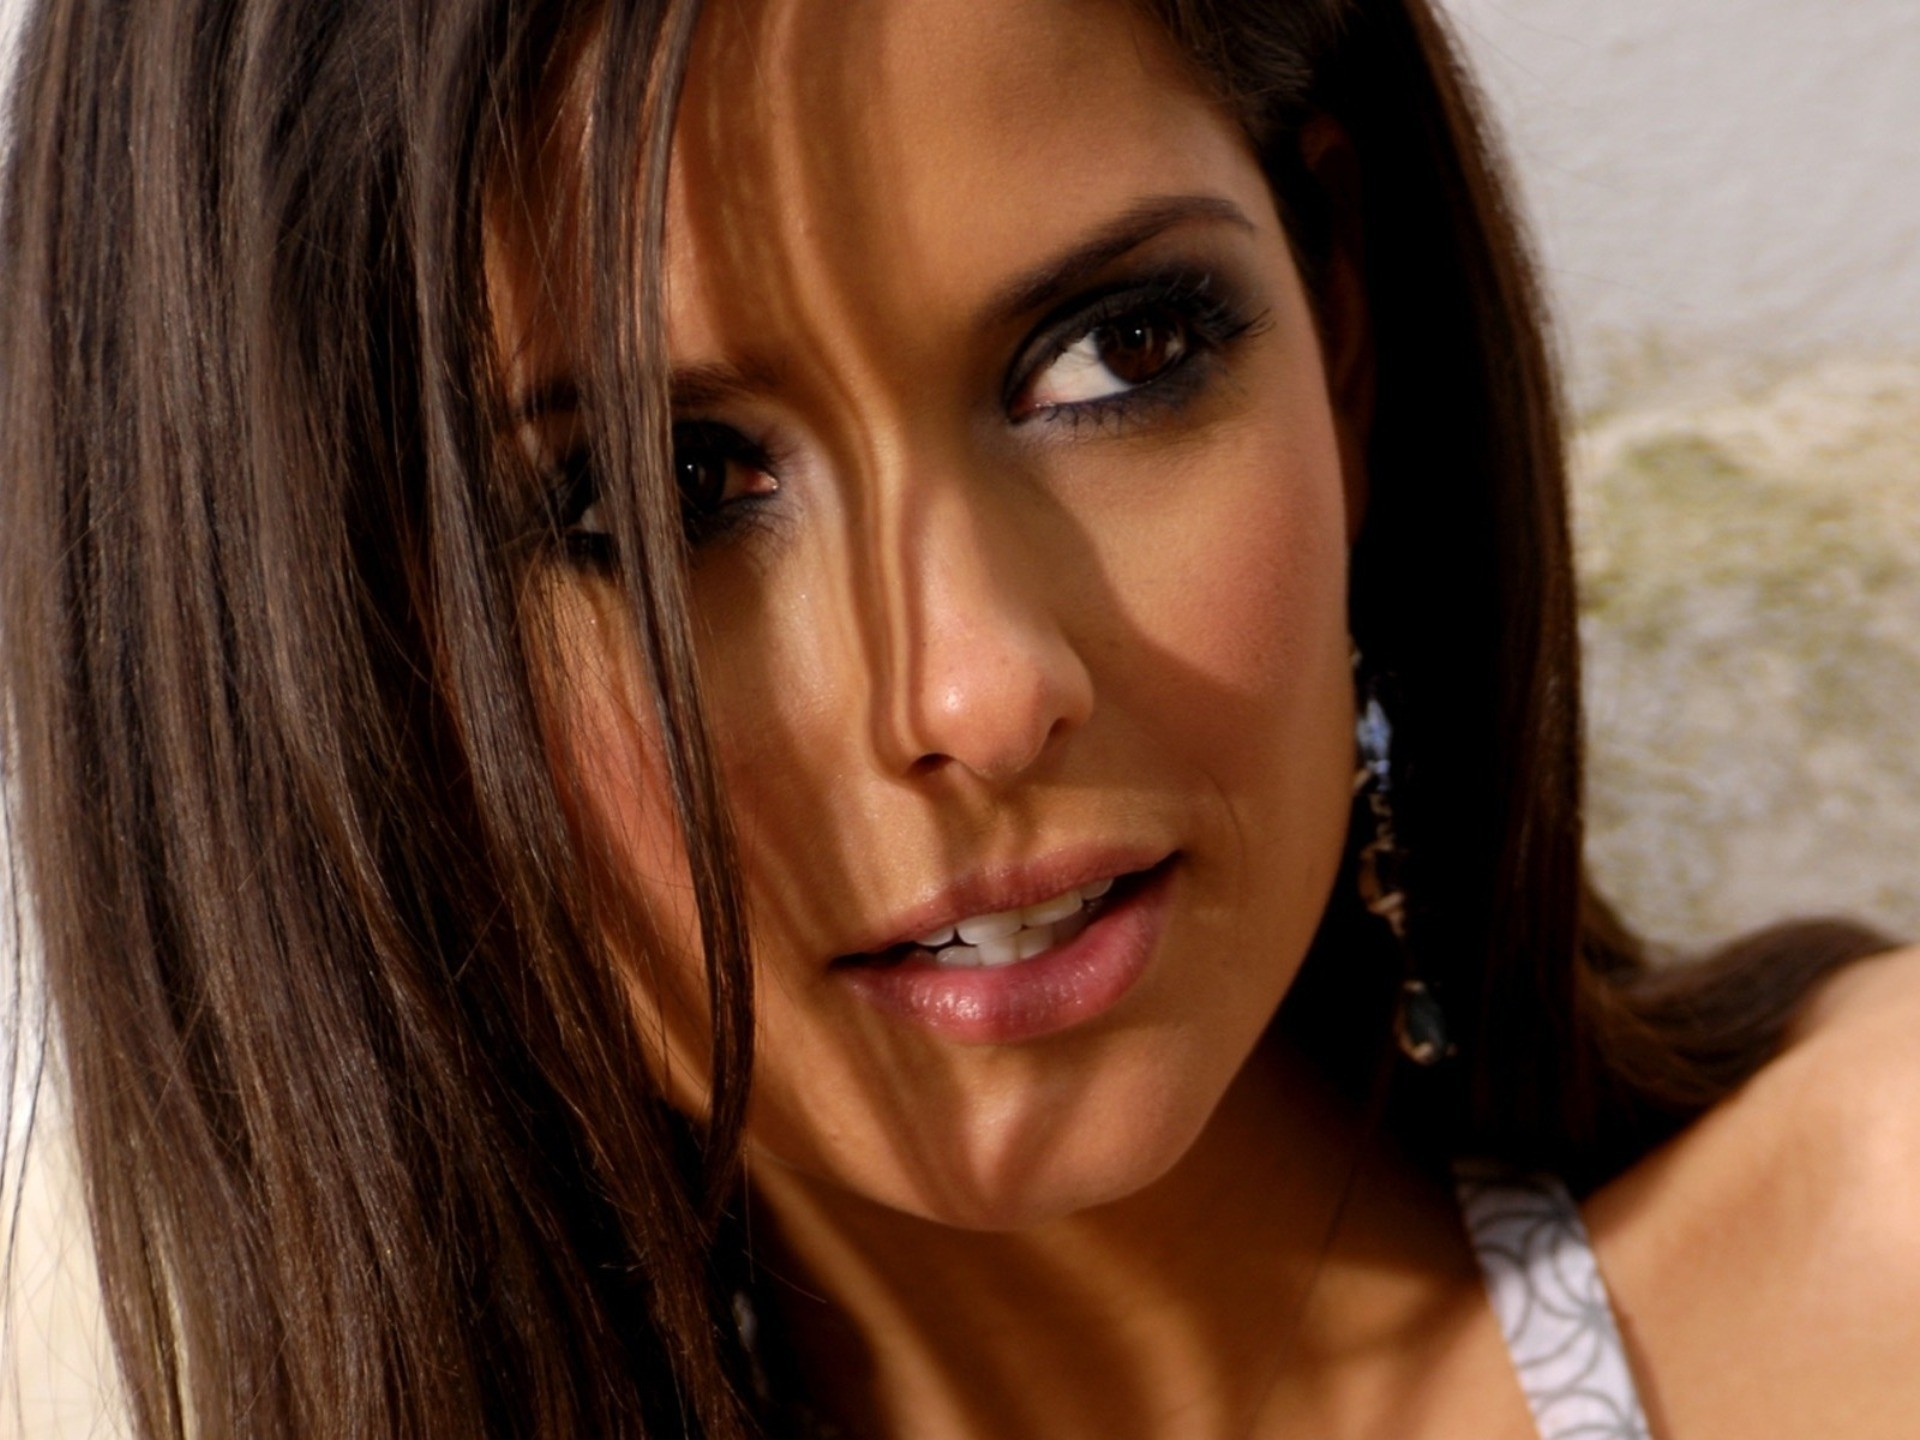 brunettes woman carla ossa HD Wallpaper